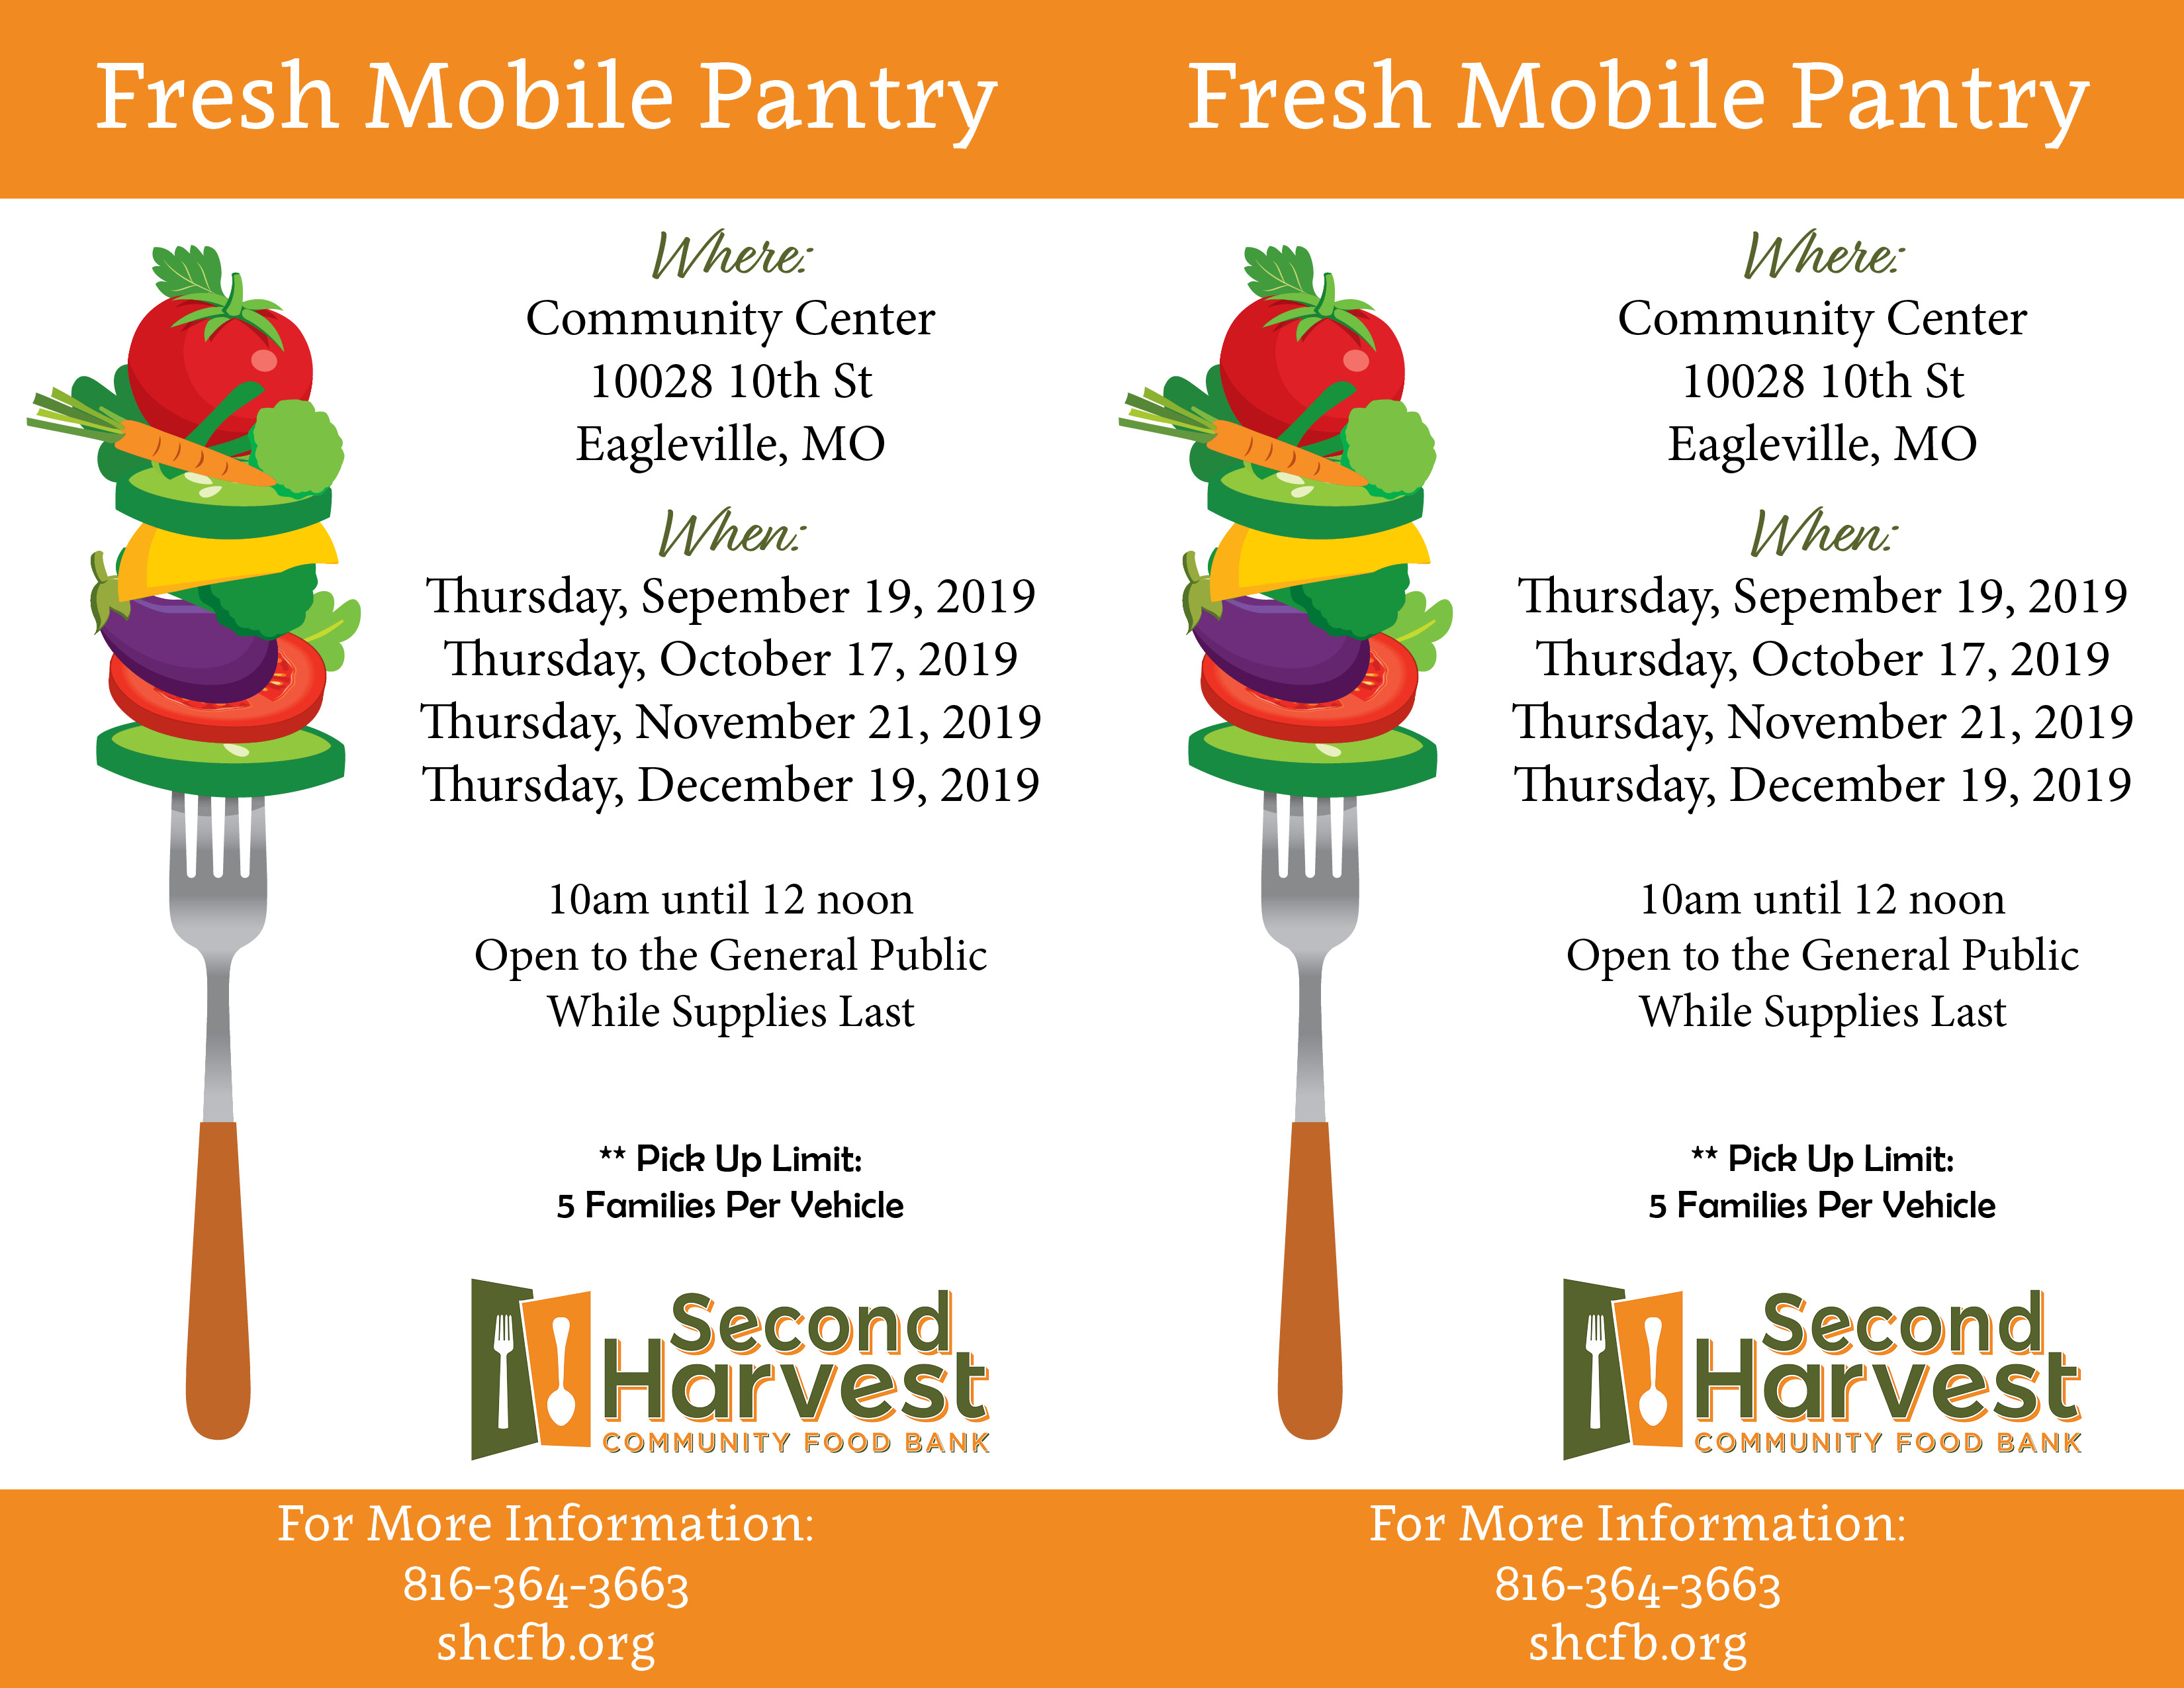 Eagleville Fresh Mobile Pantry